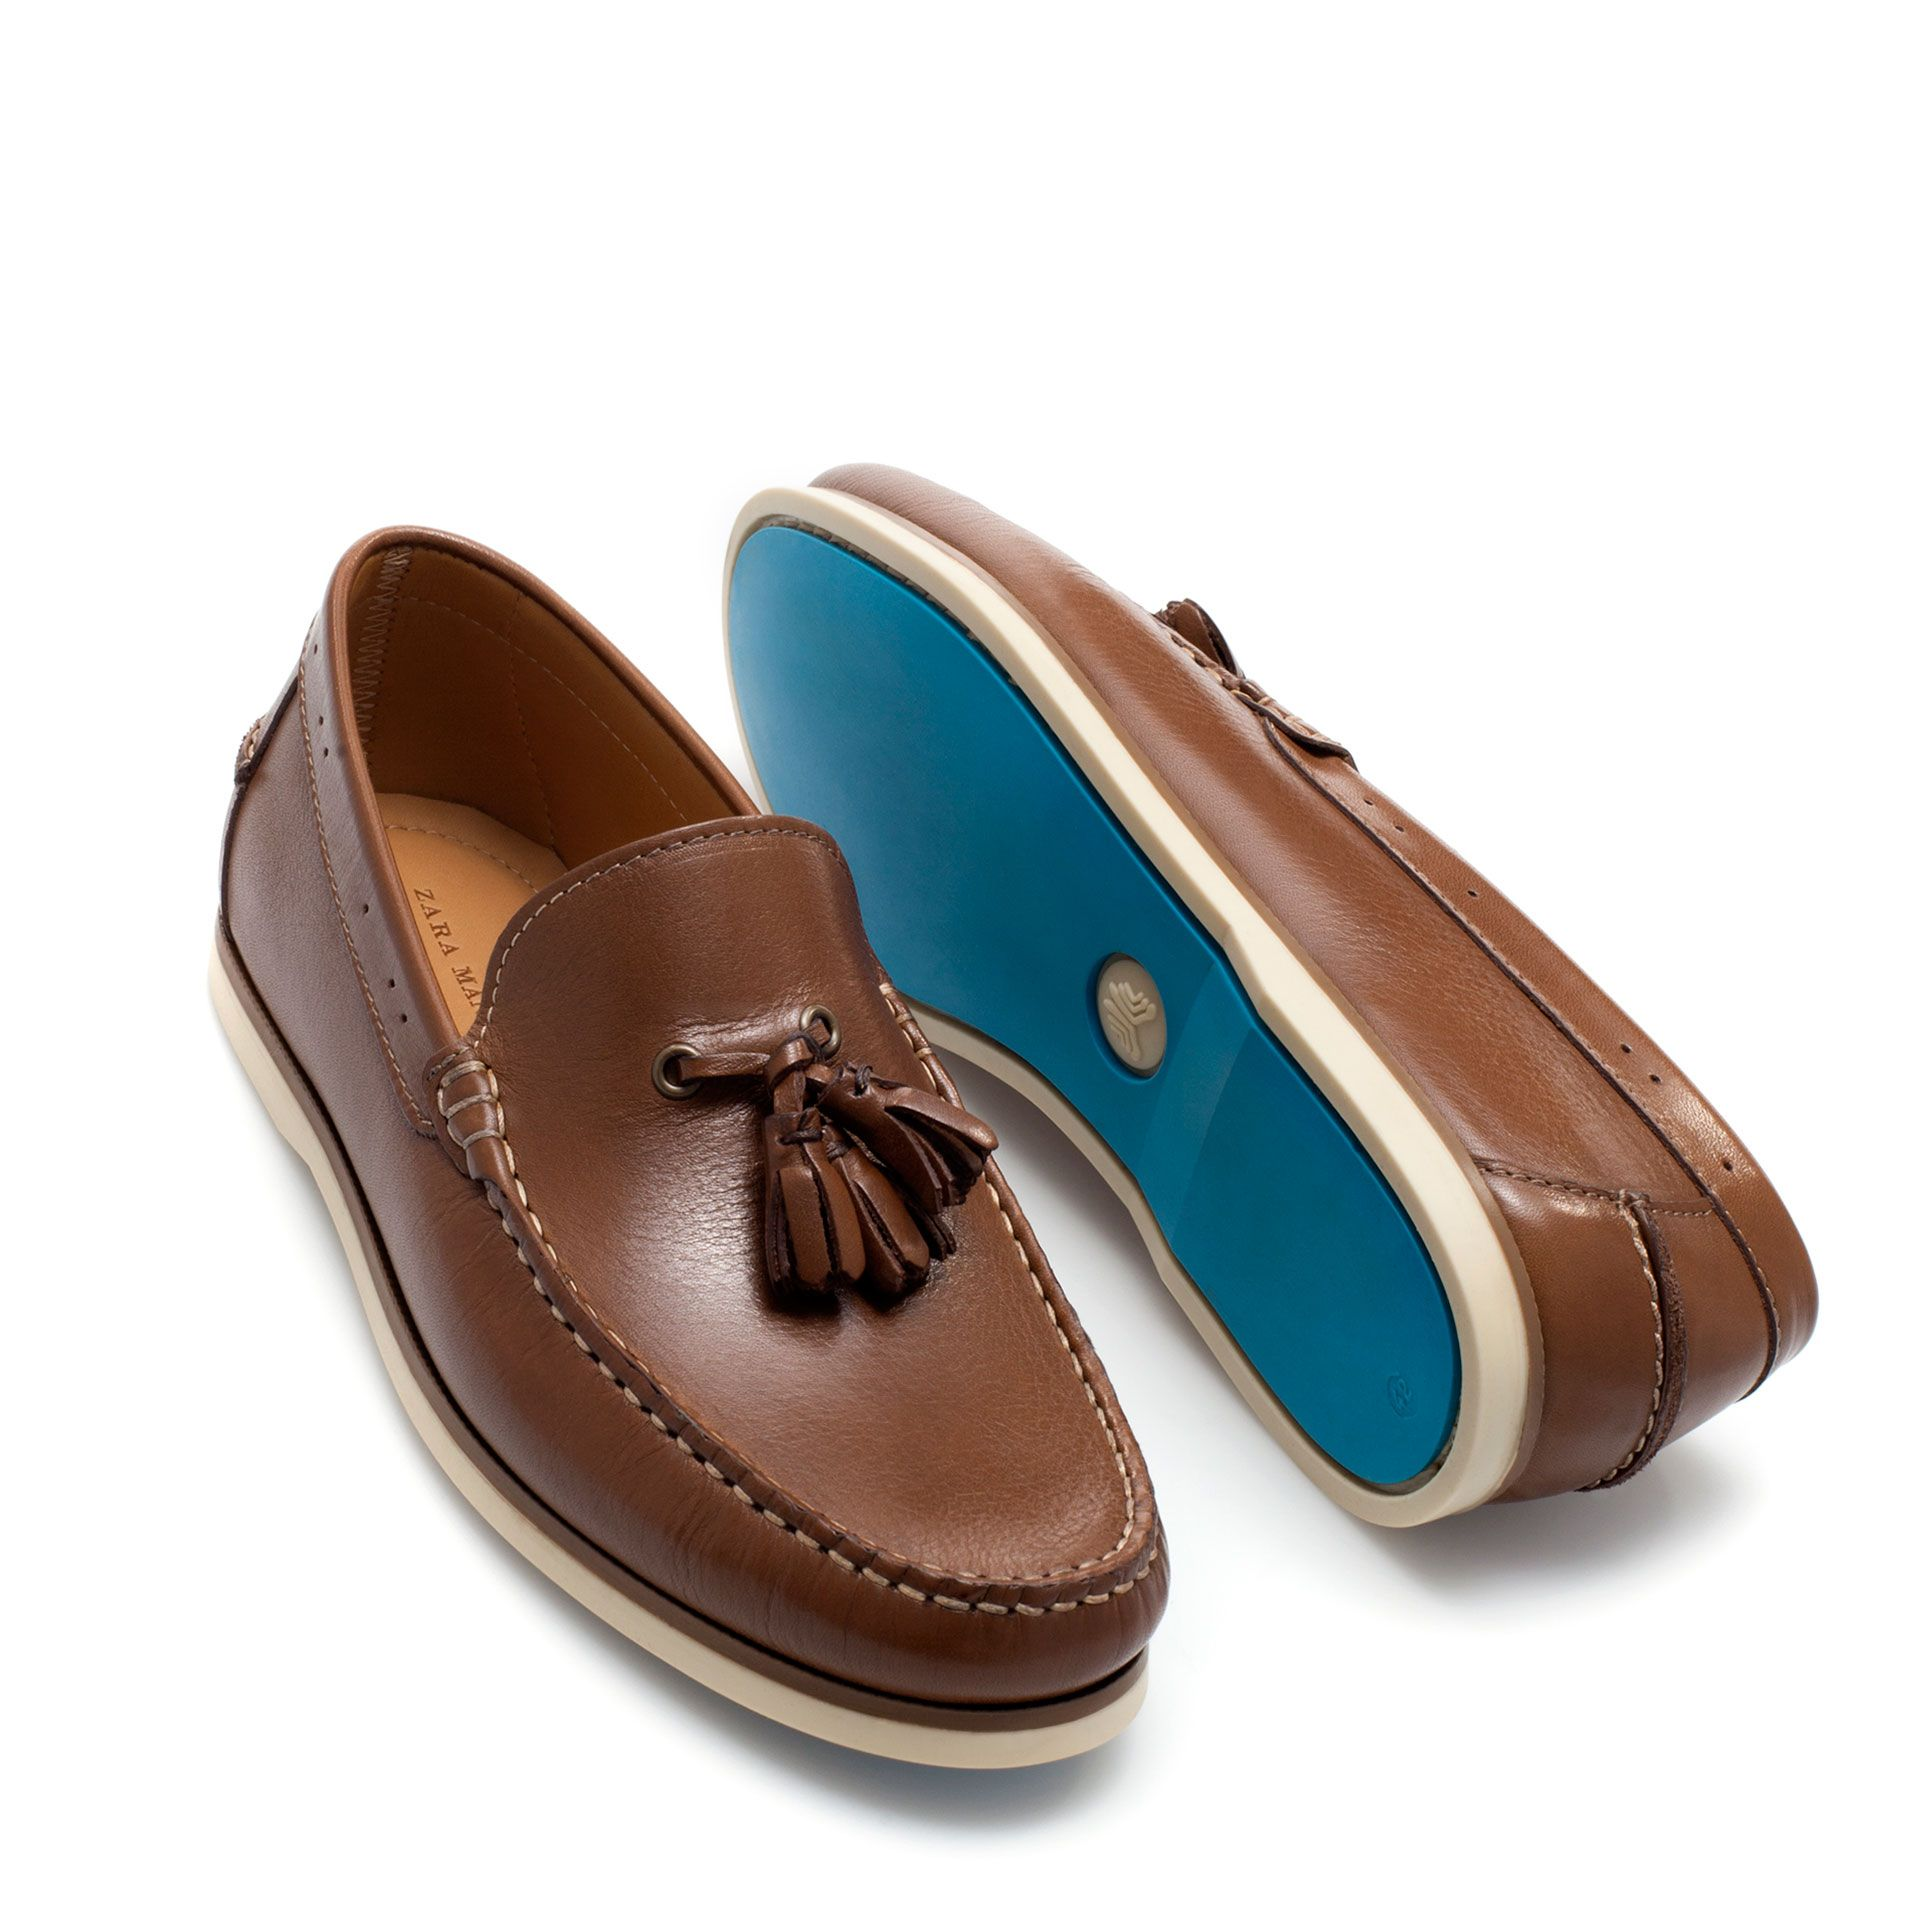 9a01aee6e9 DOCKSIDE MOCCASIN WITH TASSELS - Moccasins - Shoes - Man